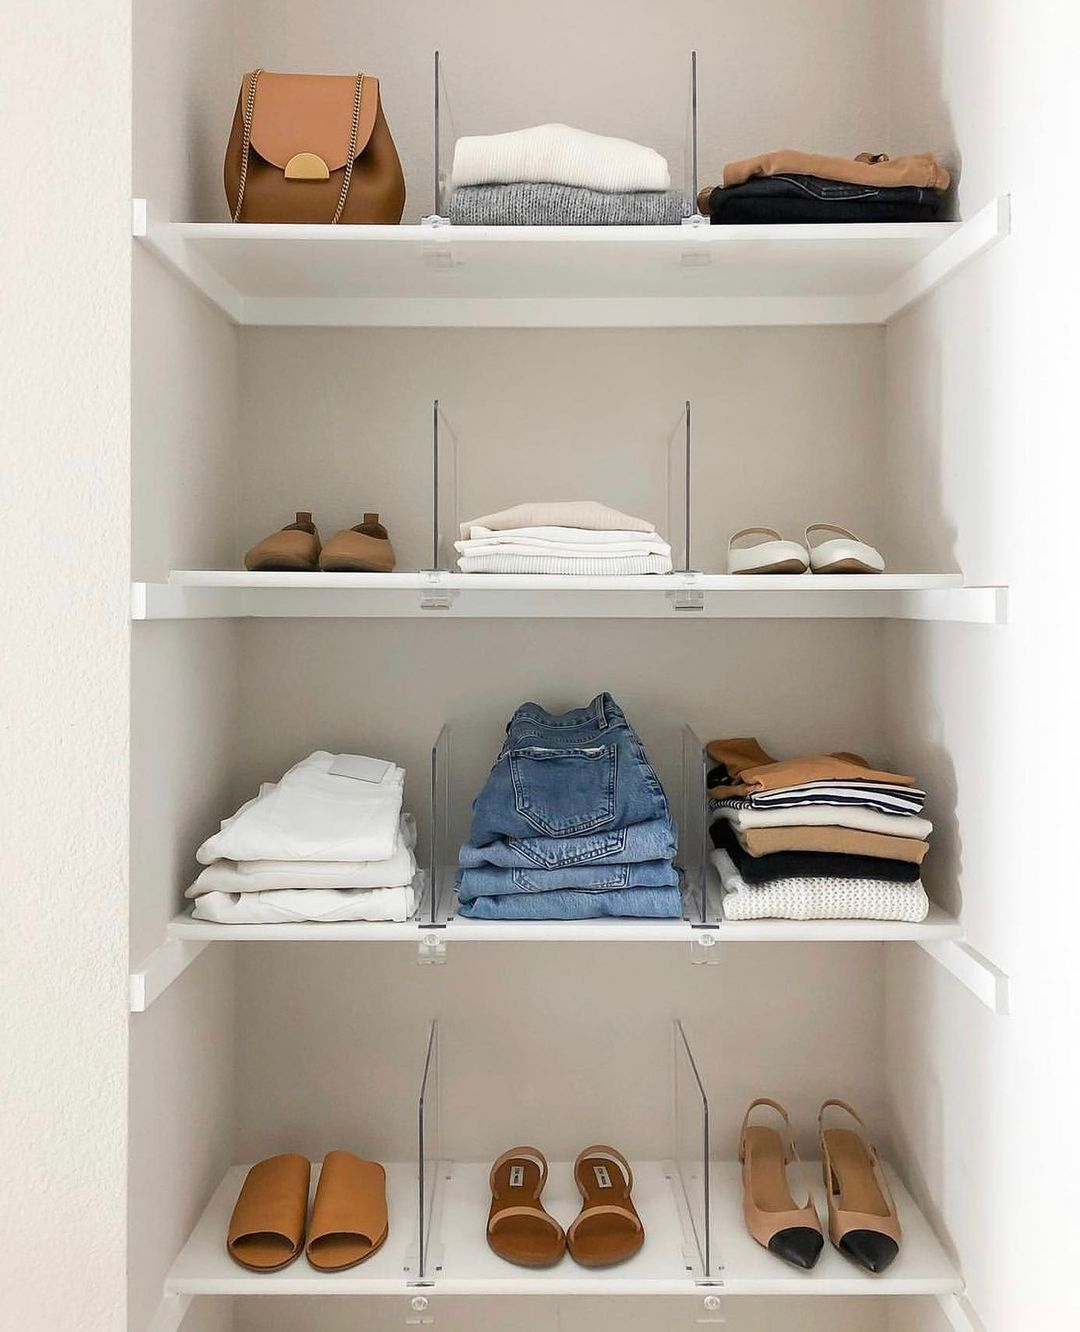 Closet with folded clothes